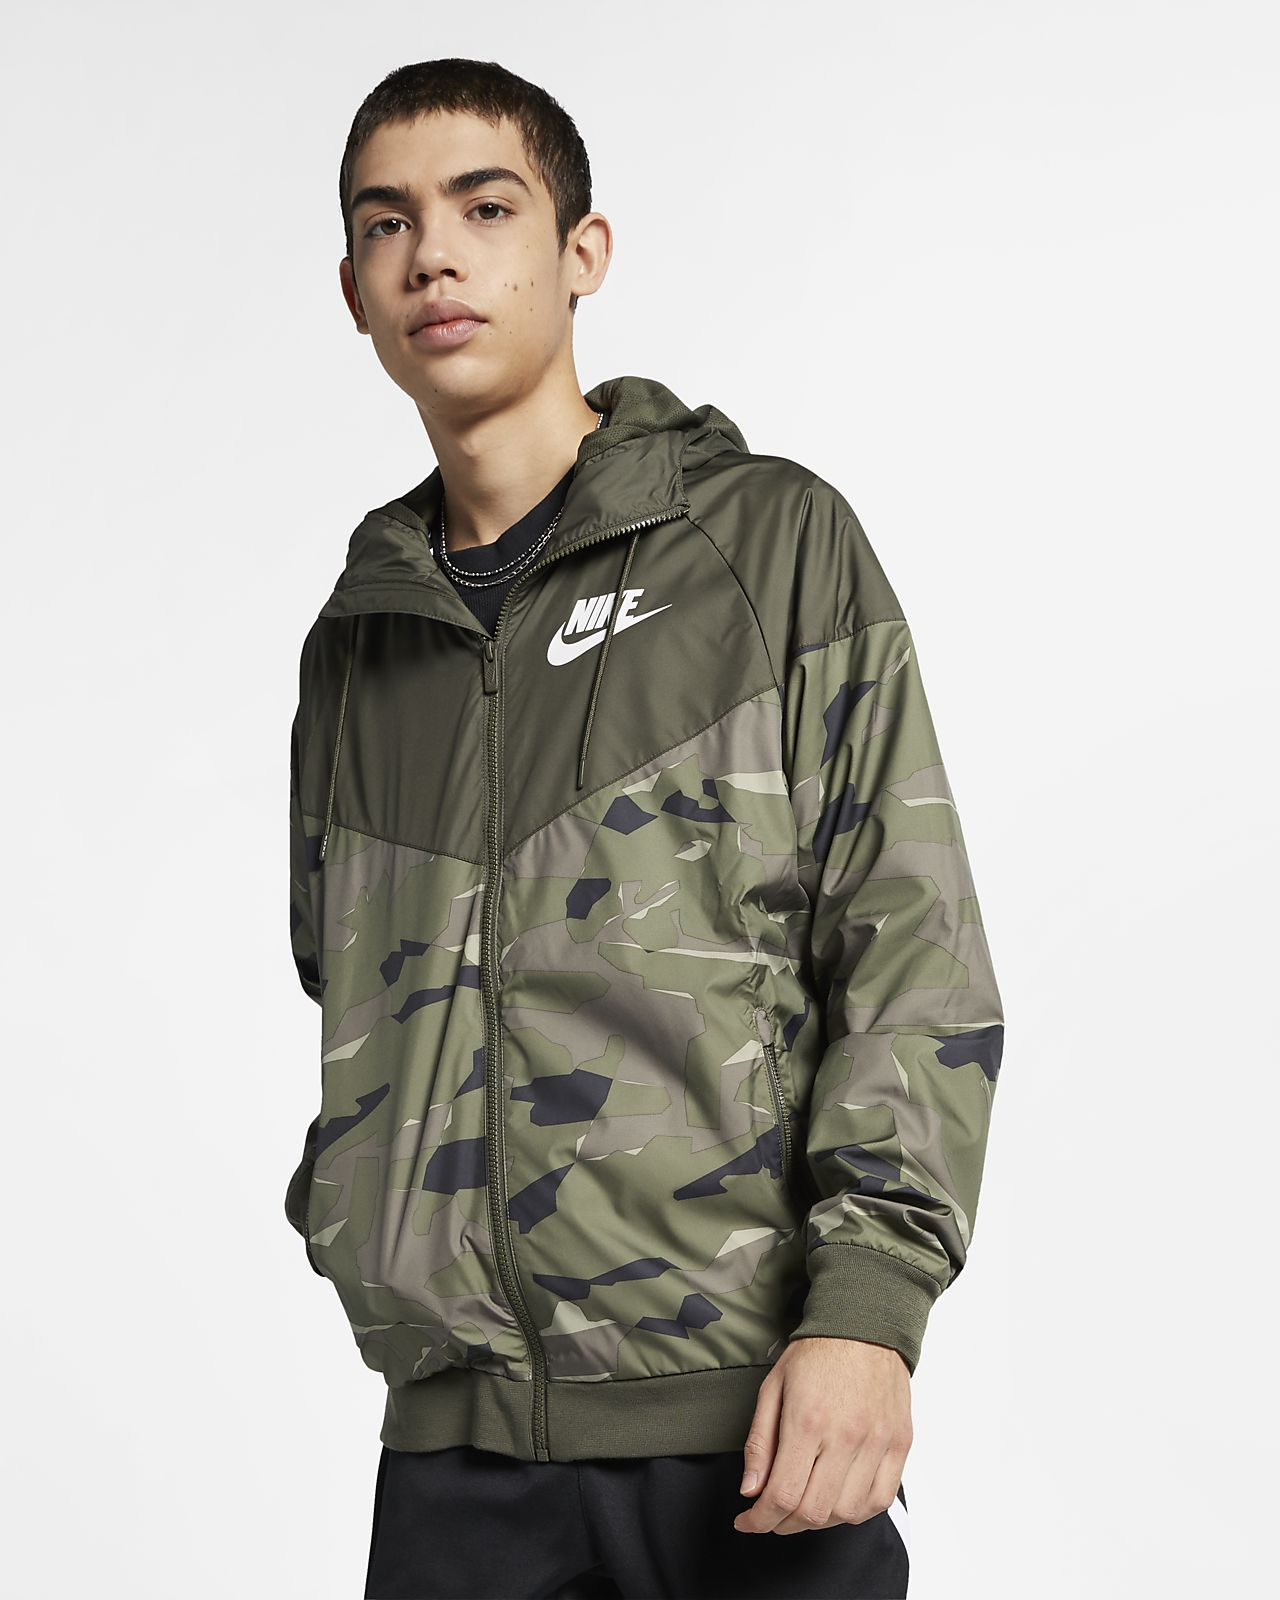 low priced 57653 df150 Veste camouflage Windrunner Nike Sportswear pour Homme